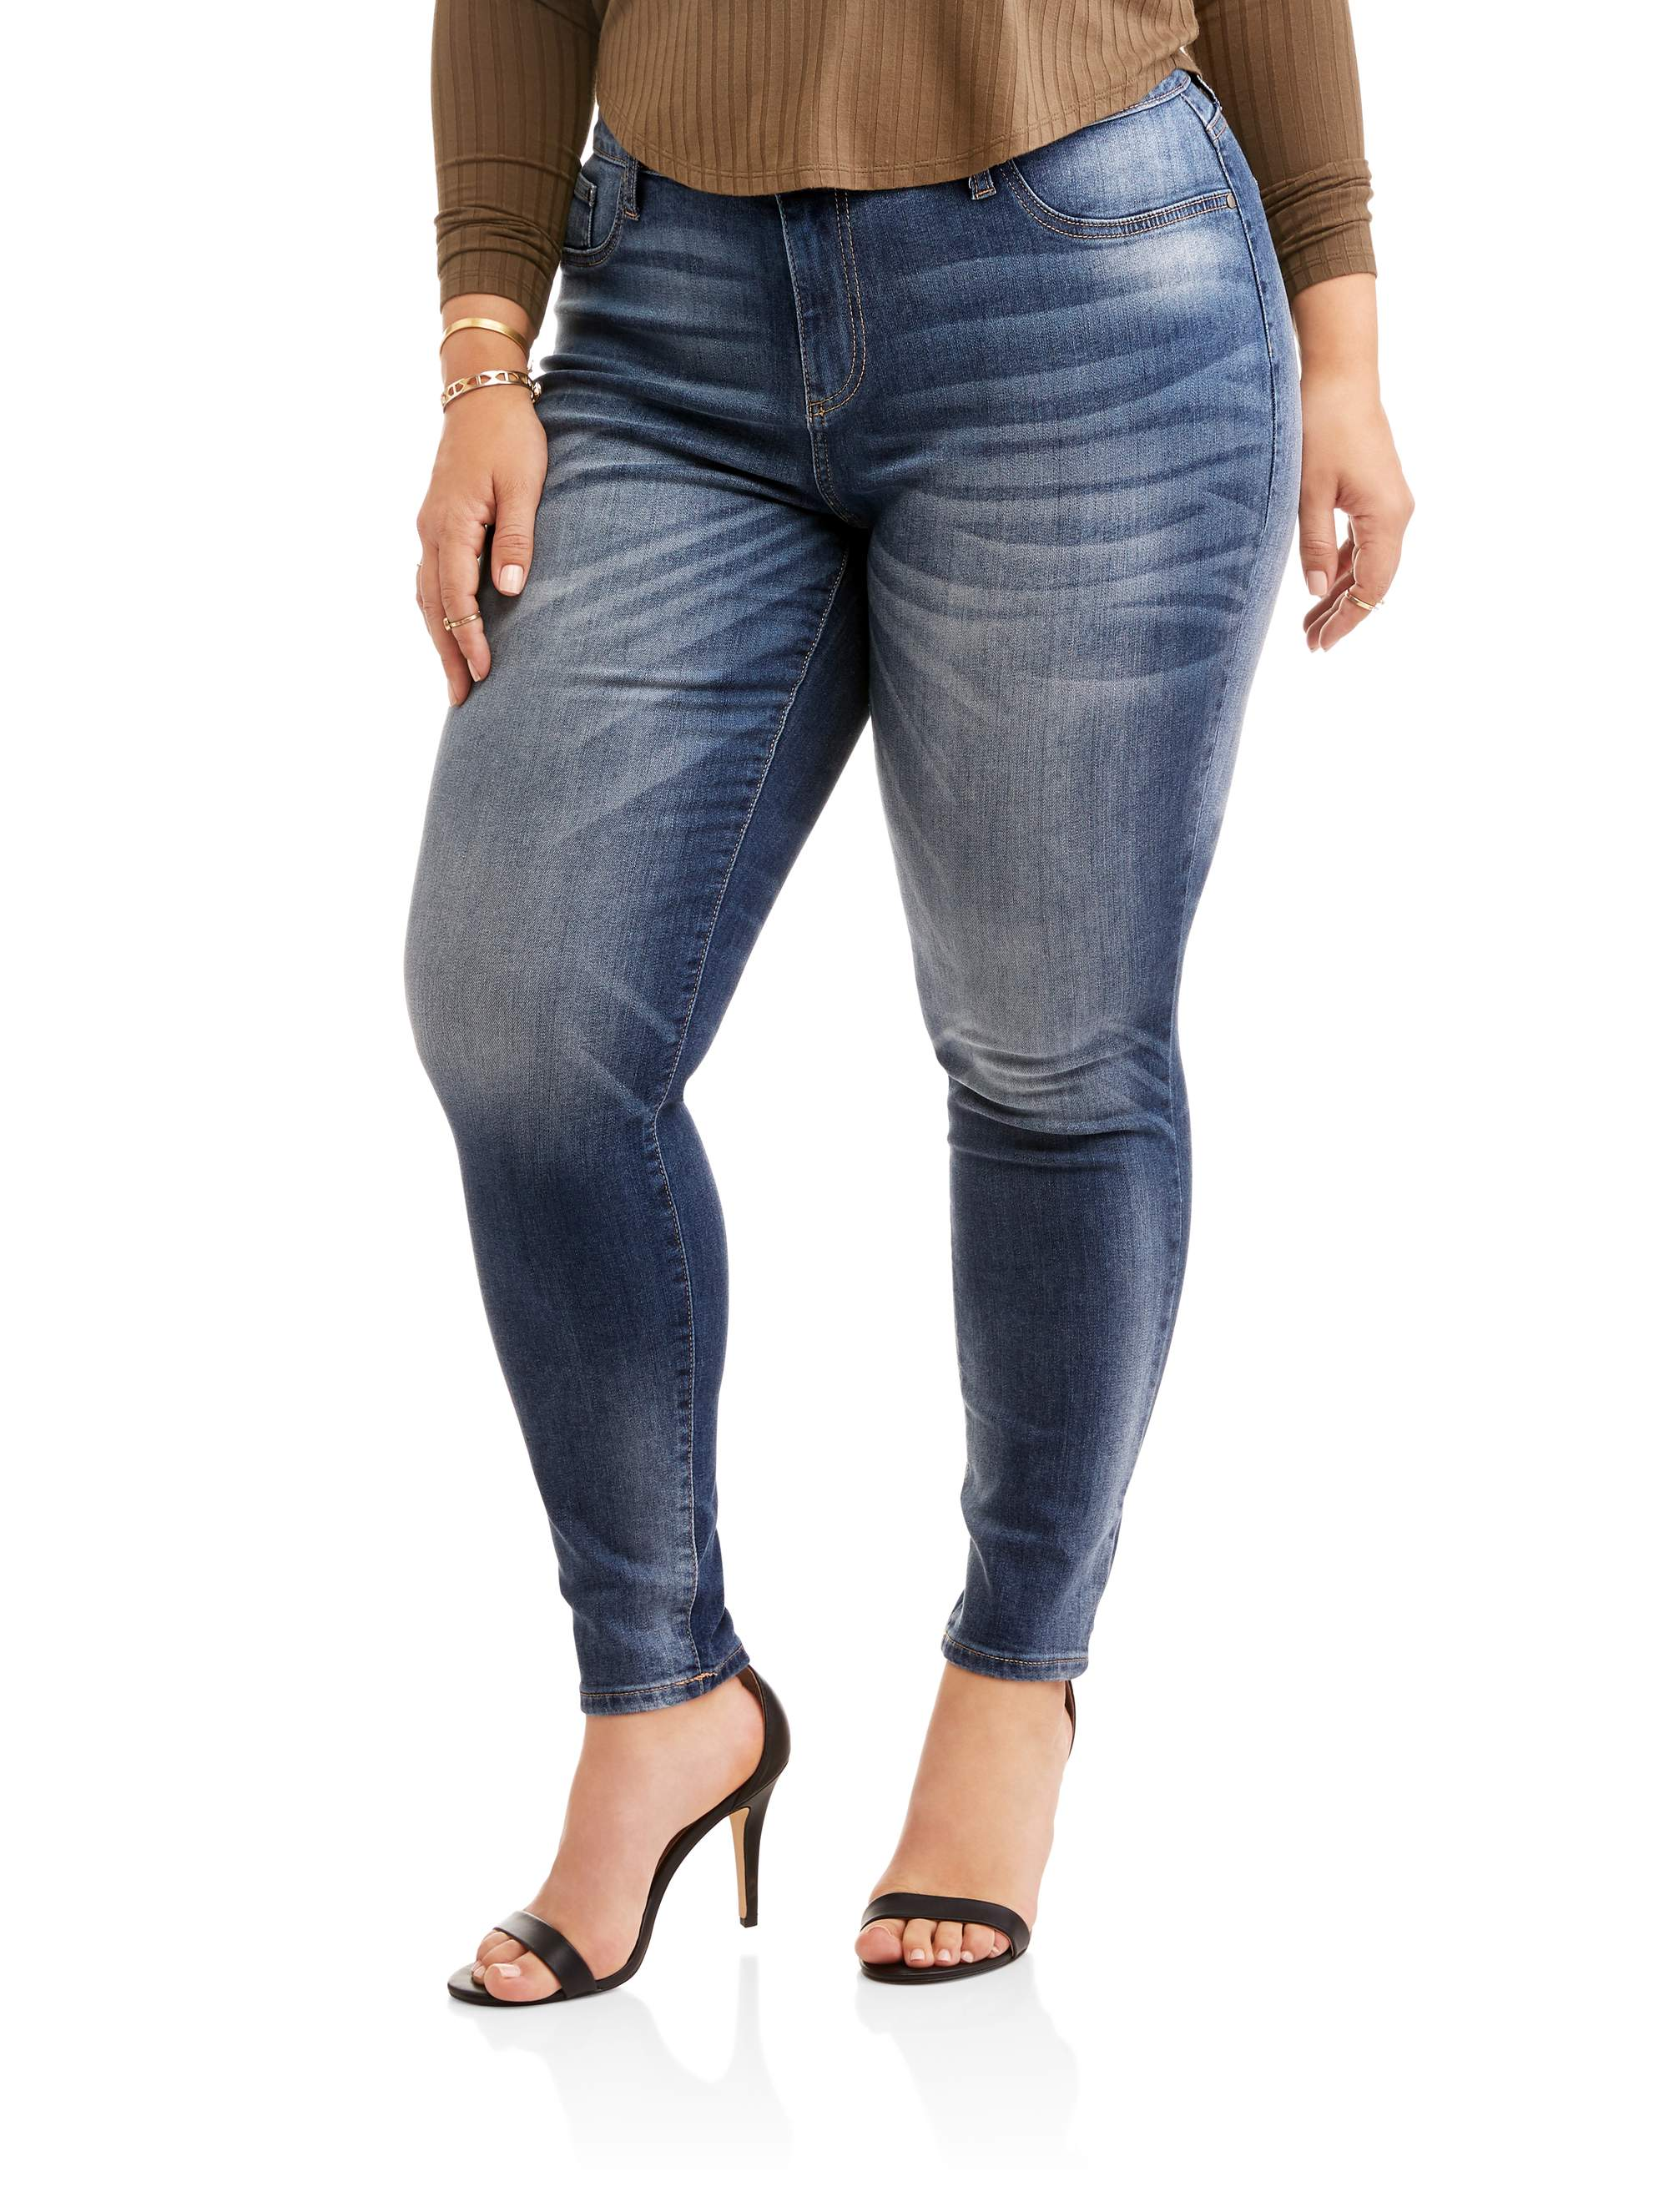 Faded Glory Women's Plus Jegging by EPIC GARMENTS MANUFACTURING CO.LTD.